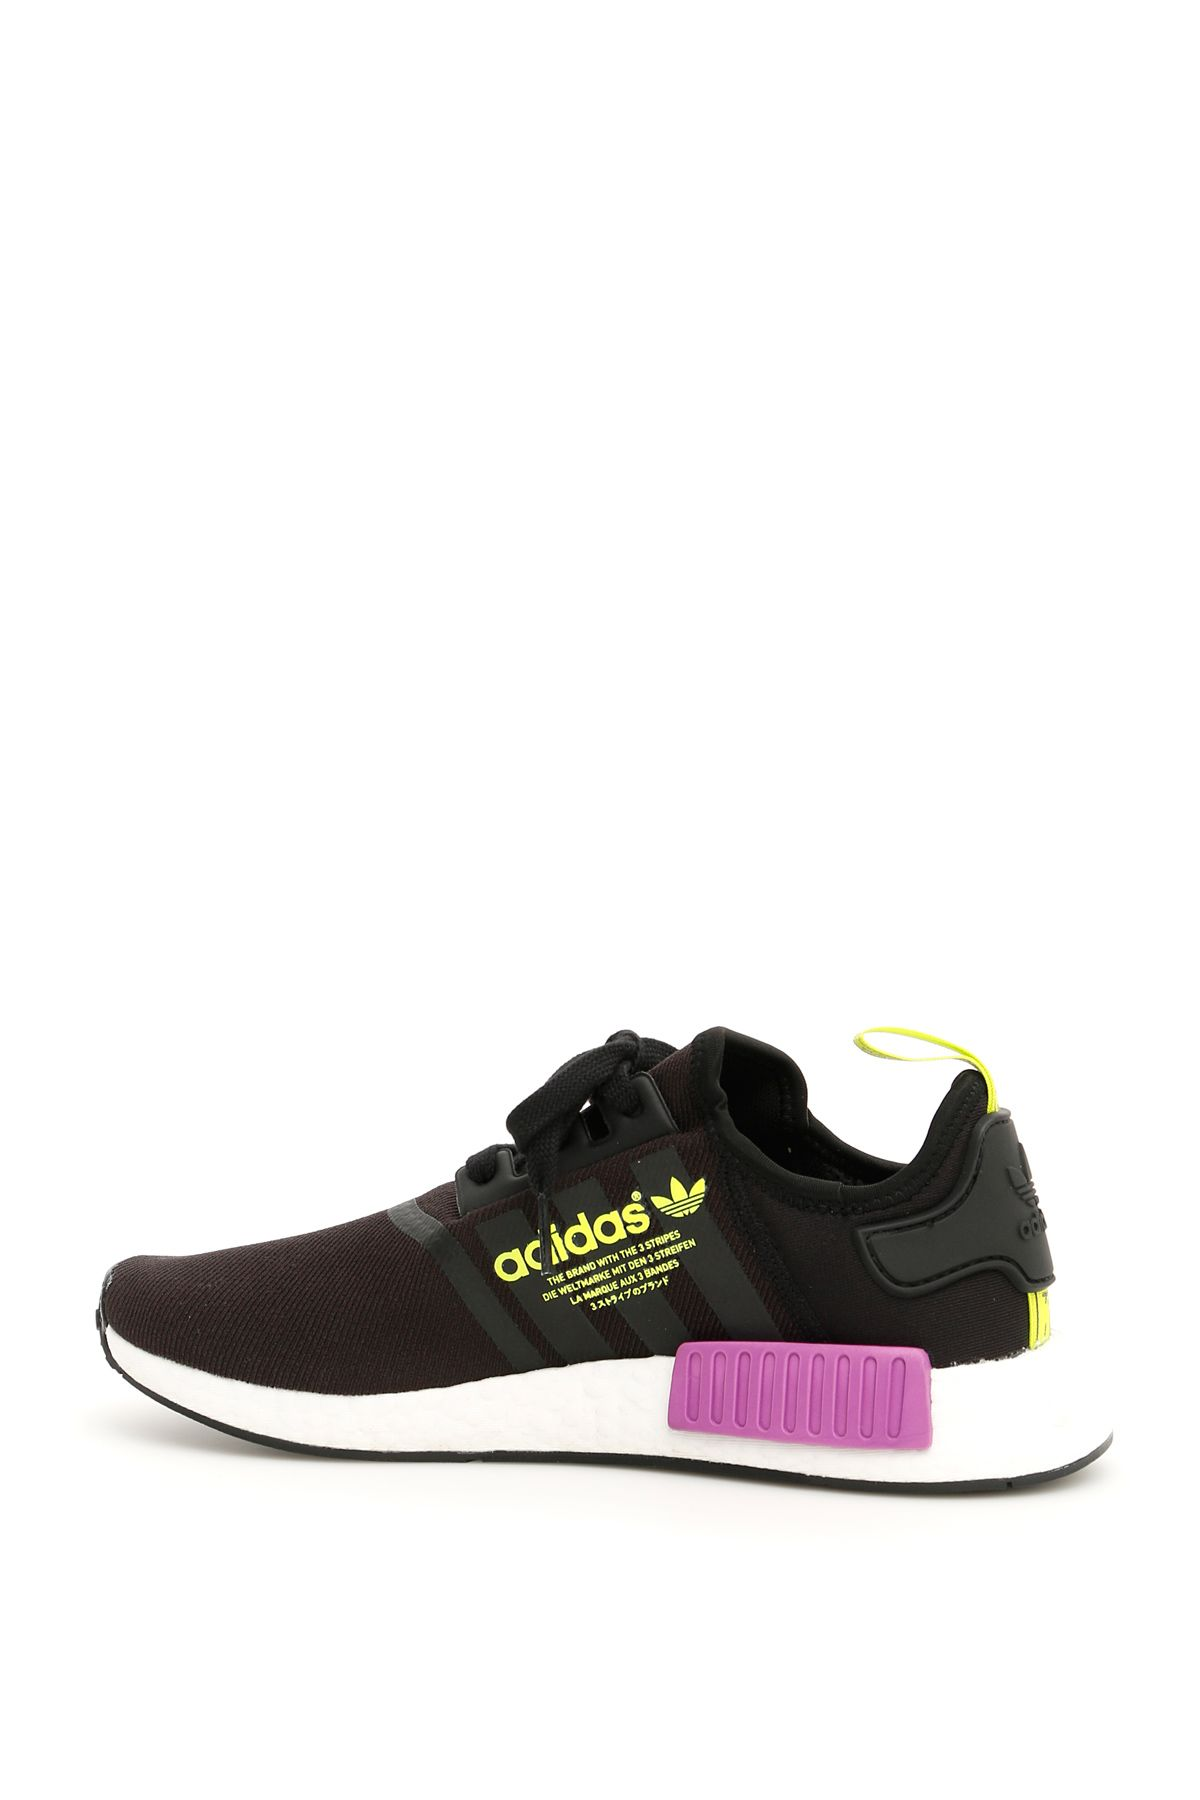 huge selection of 50af7 863b5 ... Adidas Nmd R1 Sneakers - CORE BLACK SHOCK PURPLE (Black) ...